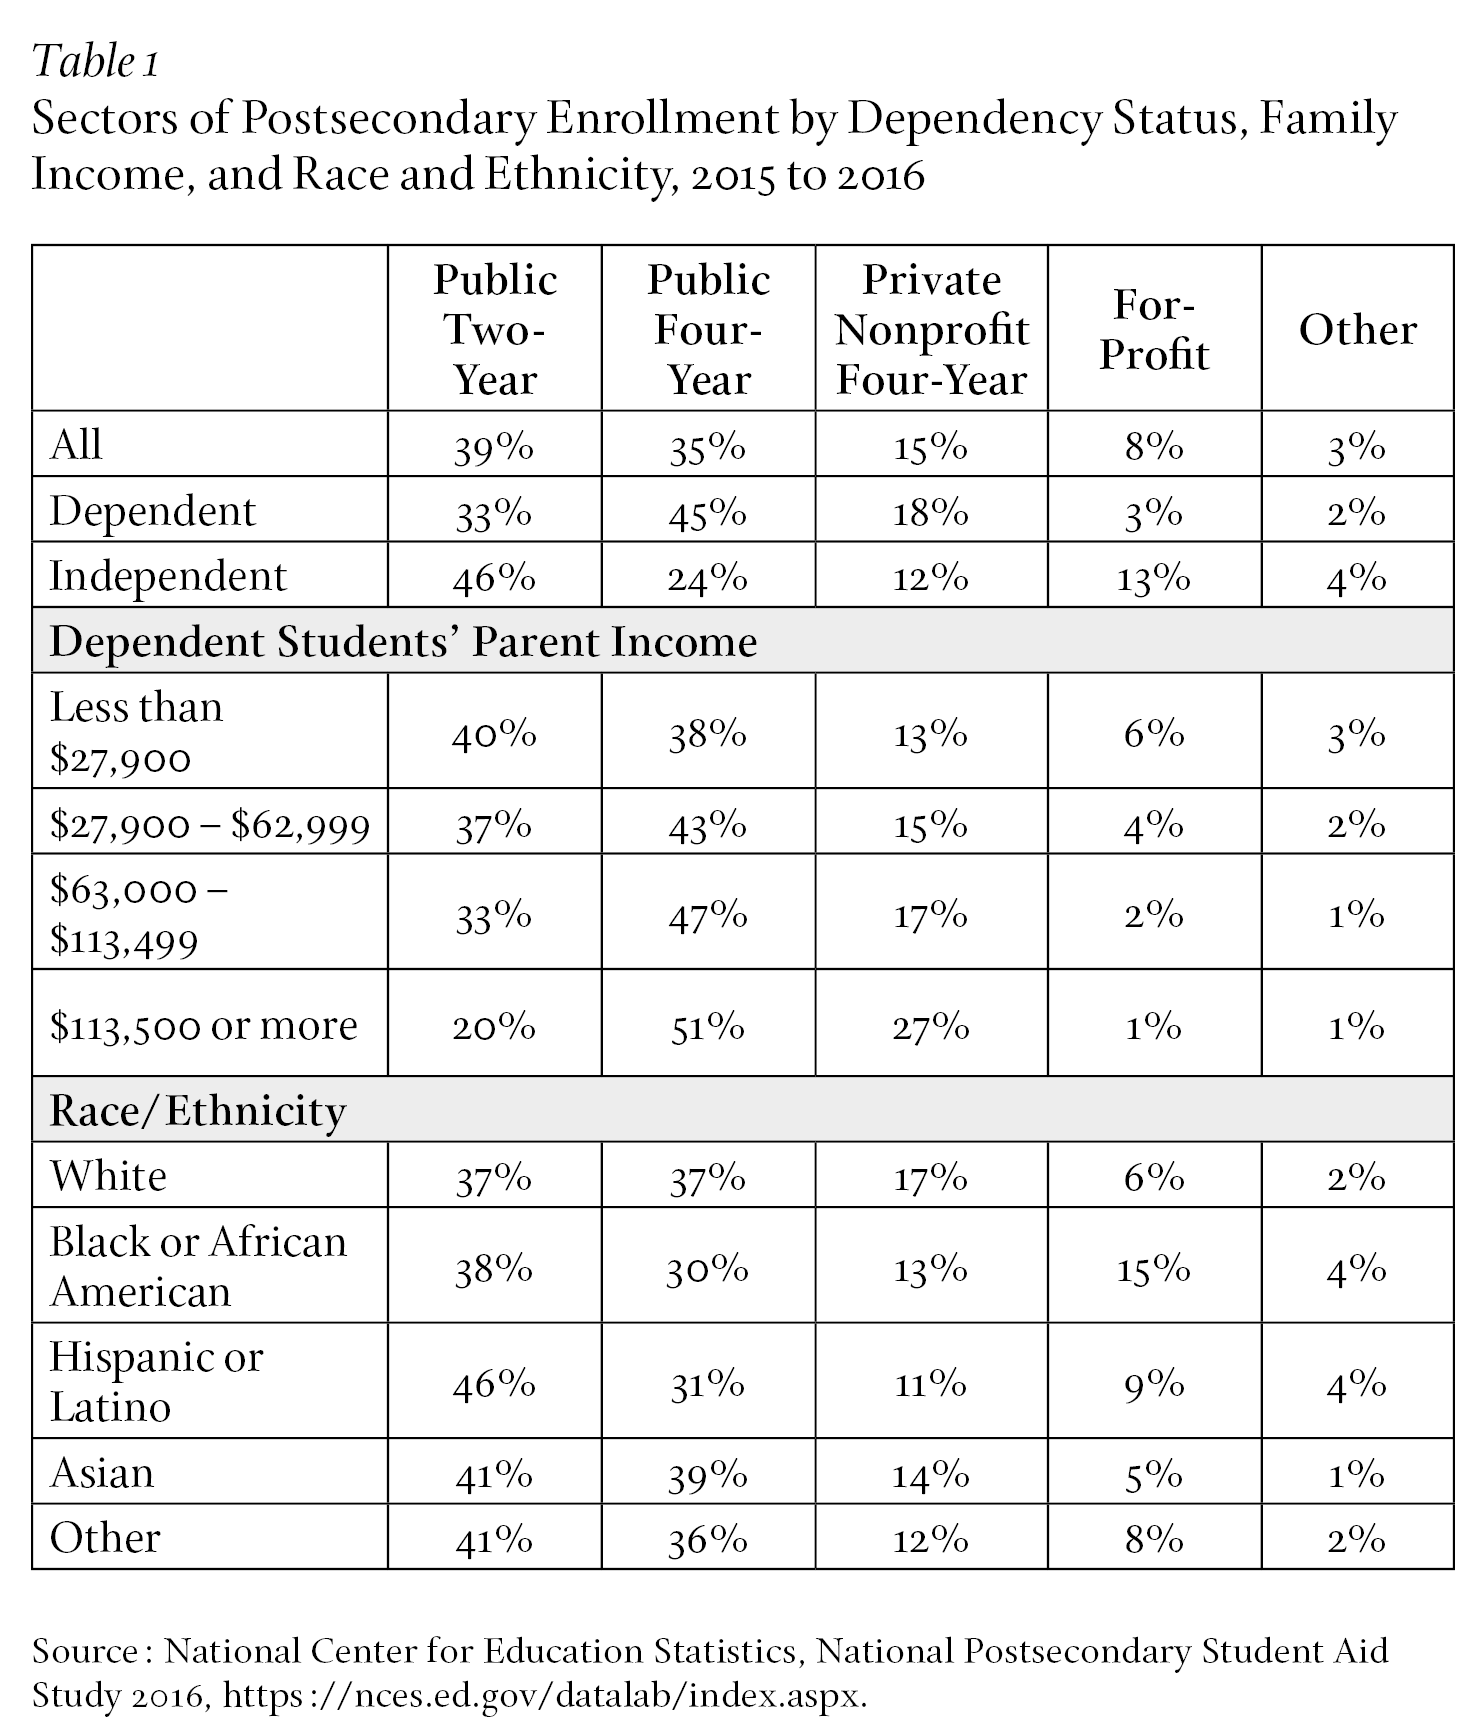 Sectors of Postsecondary Enrollment by Dependency Status, Family Income, and Race and Ethnicity, 2015 to 2016